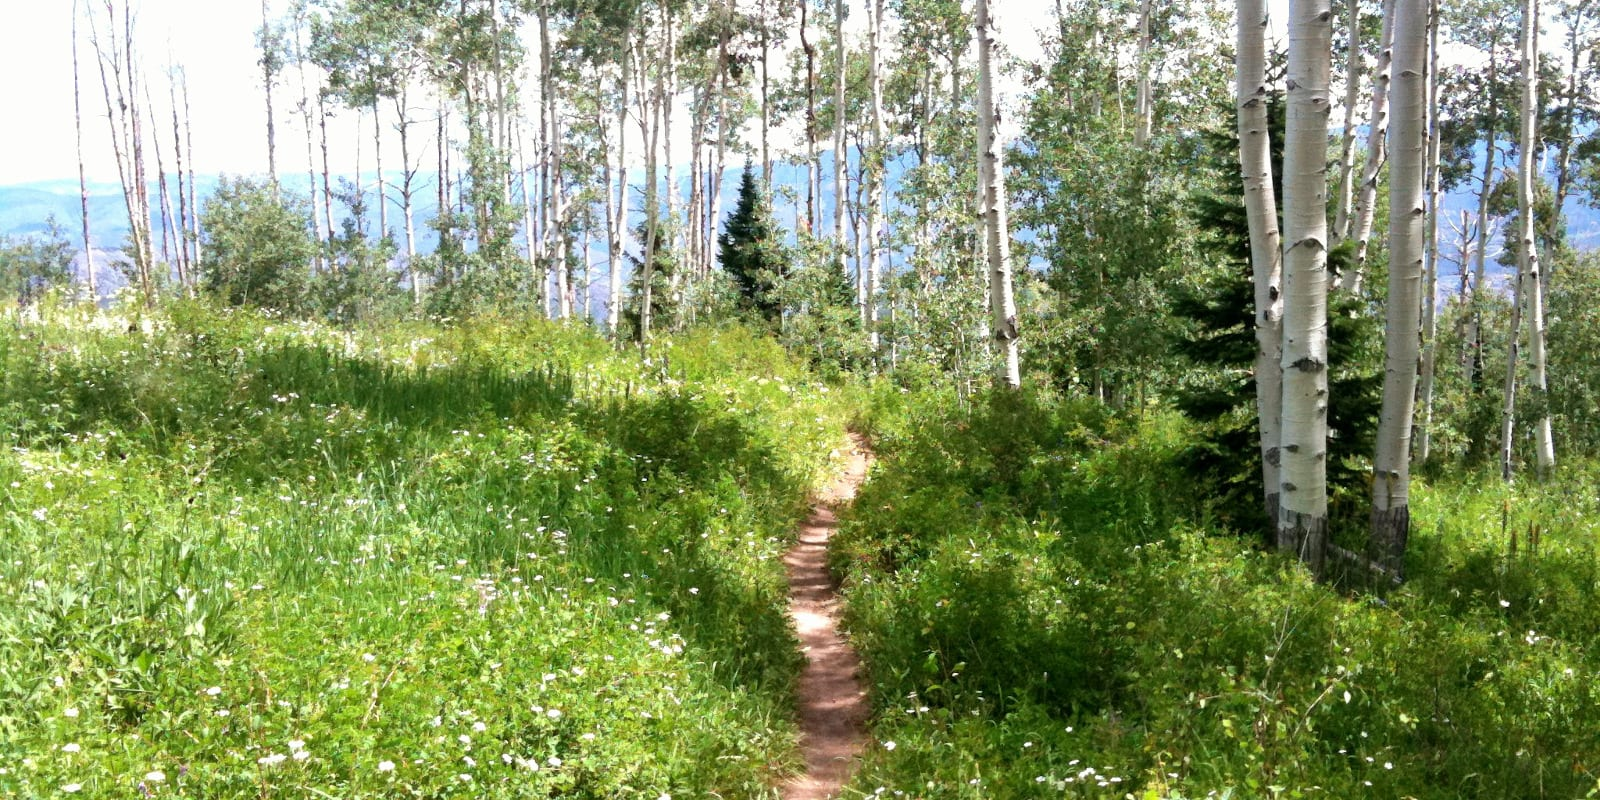 Government Trail in Aspen, Colorado